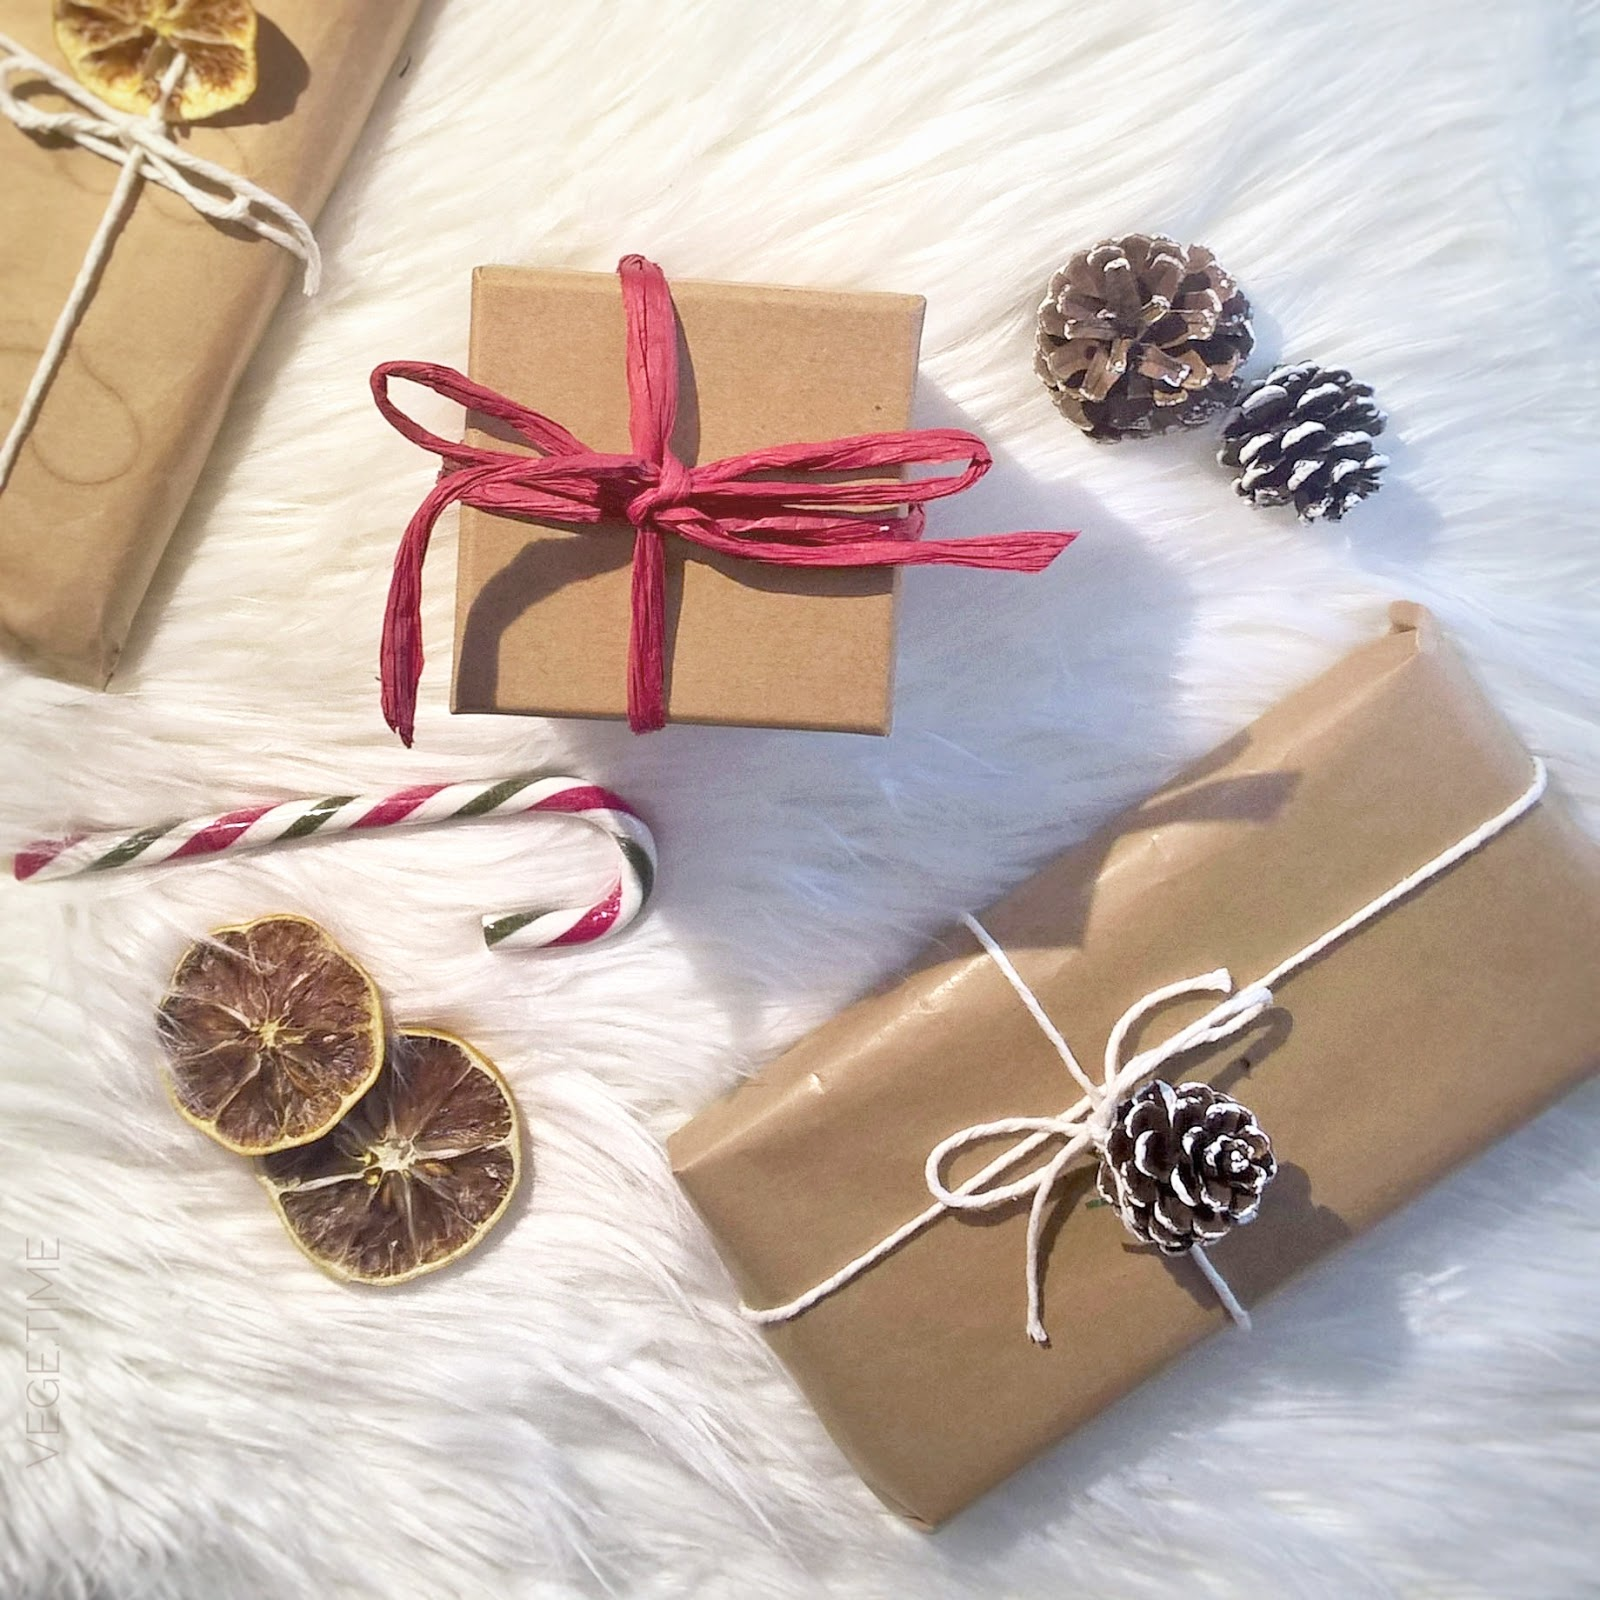 Ideas for eco gift wrapping